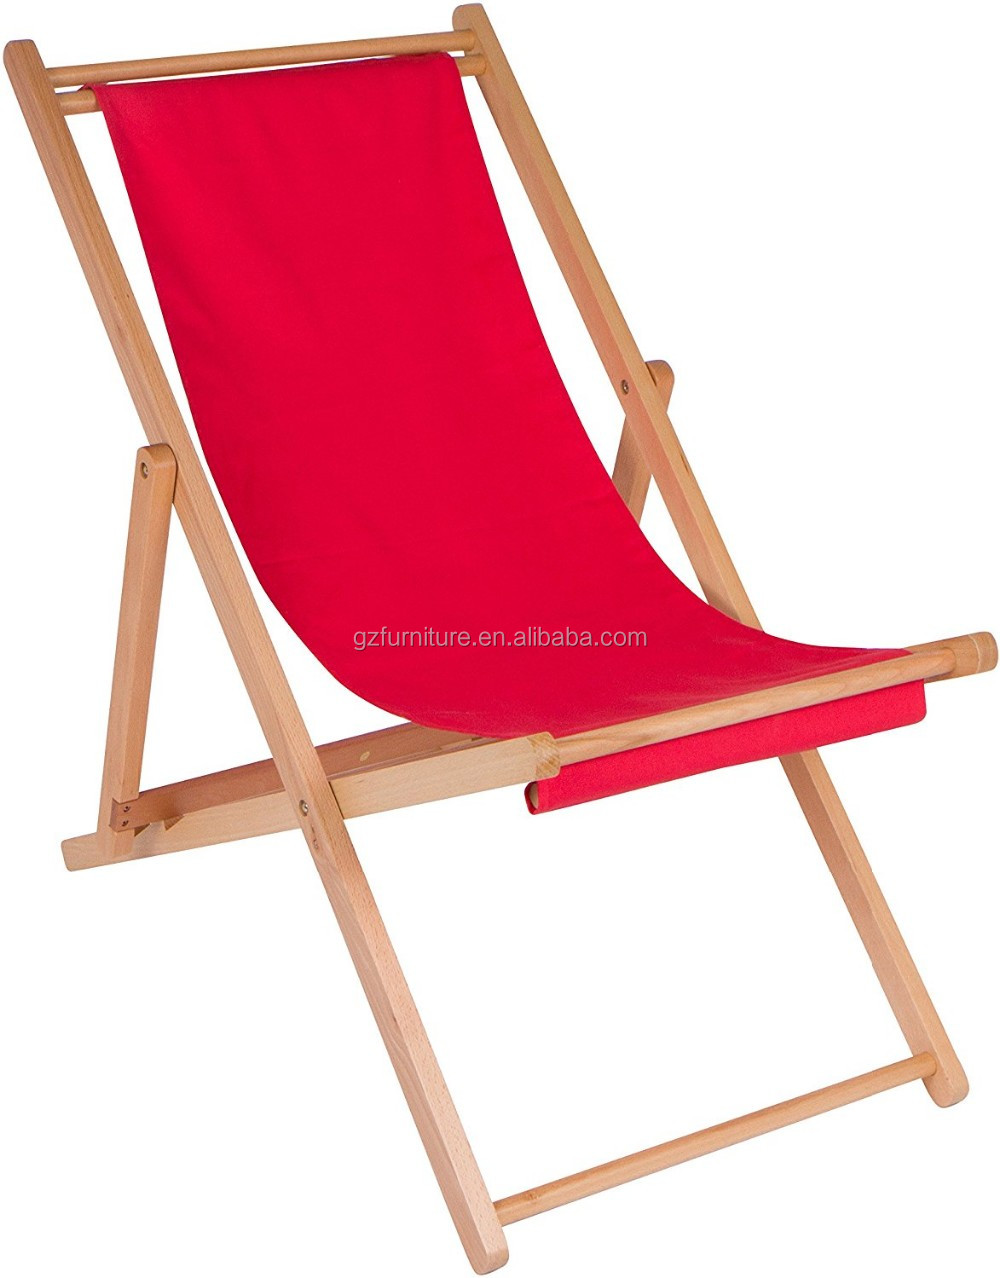 3 Position Colorful Fabric Sling Folding Adjustable Beach Chair